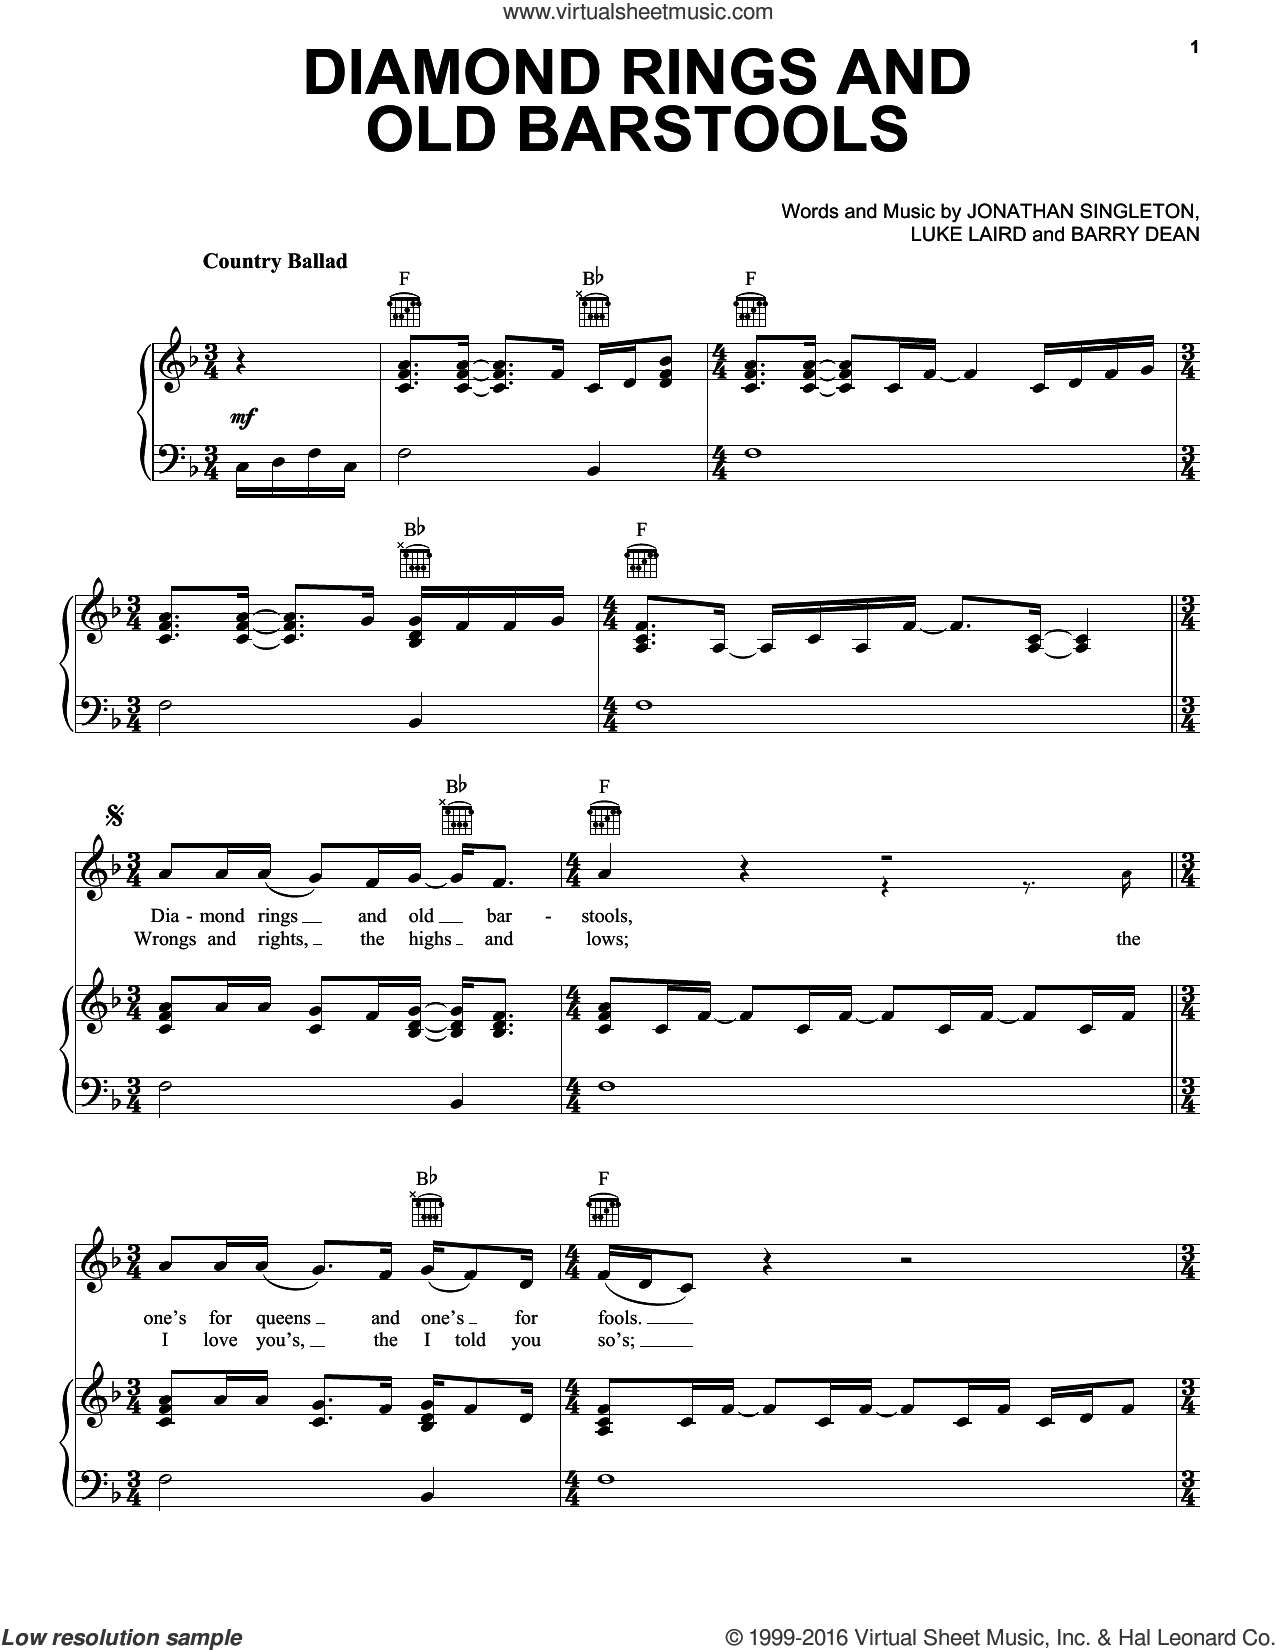 Diamond Rings And Old Barstools sheet music for voice, piano or guitar by Tim McGraw and Luke Laird, intermediate voice, piano or guitar. Score Image Preview.